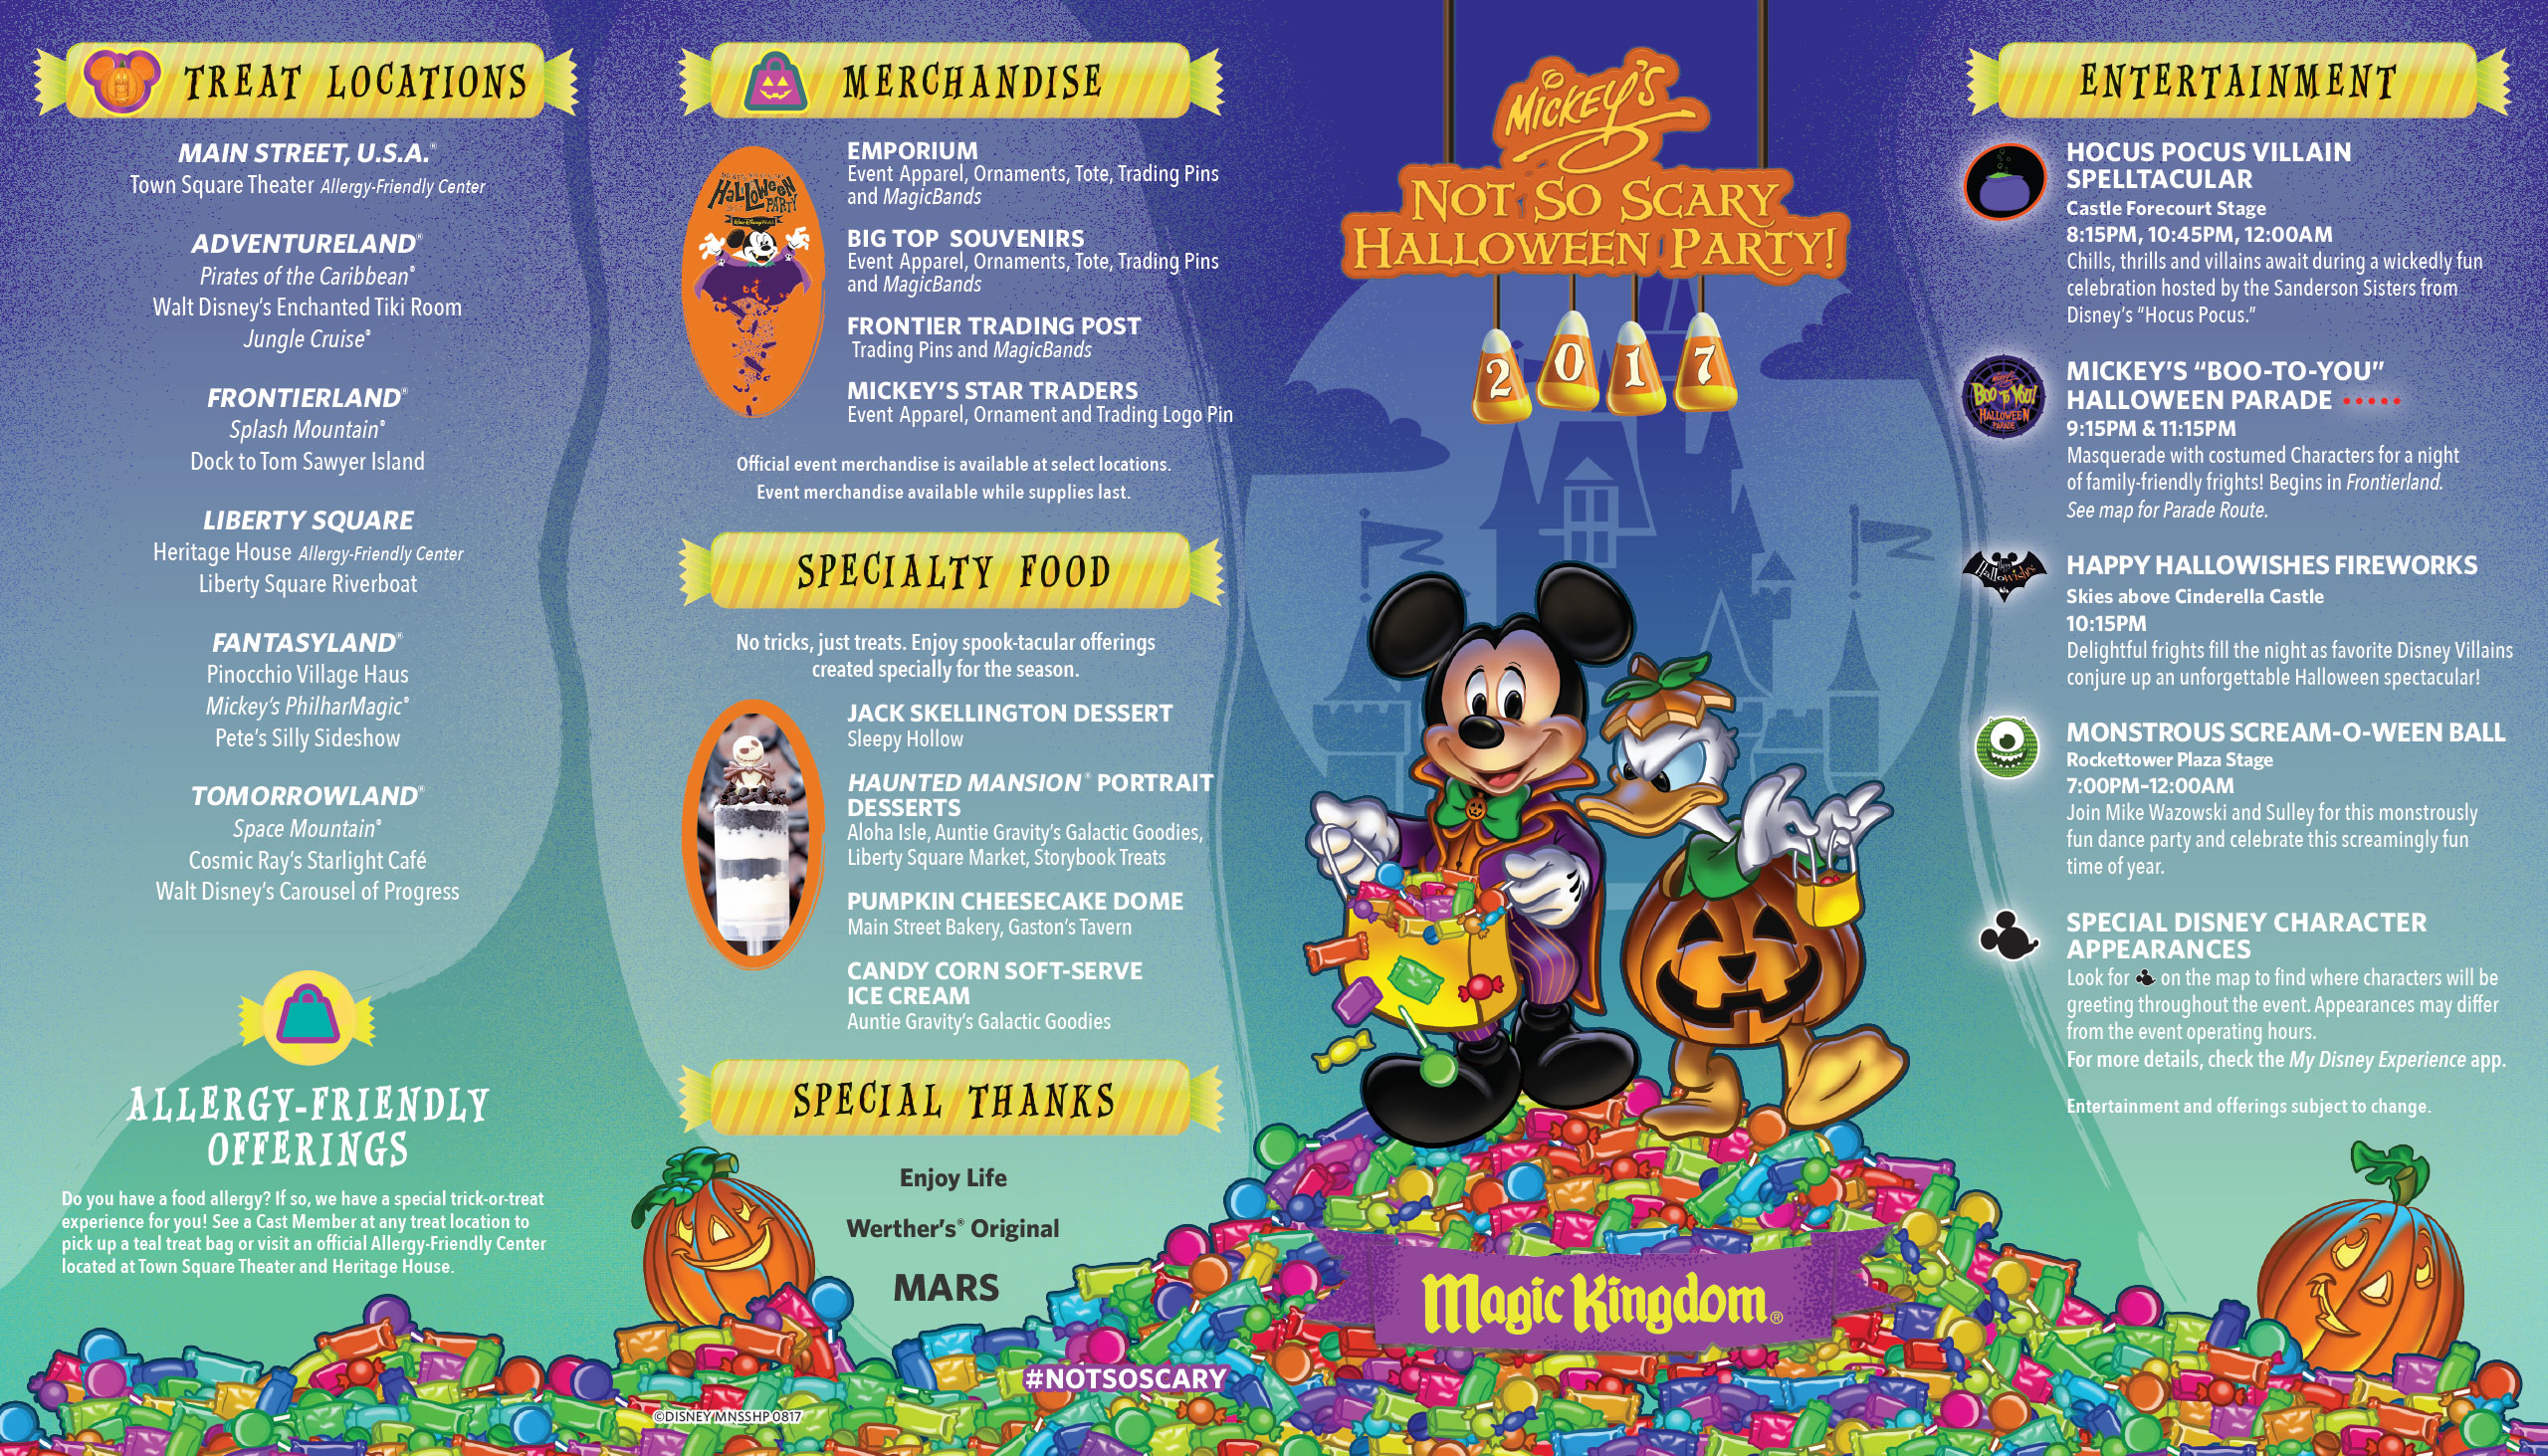 PHOTOS - Guide map for the 2017 Mickey's Not-So-Scary Halloween Party